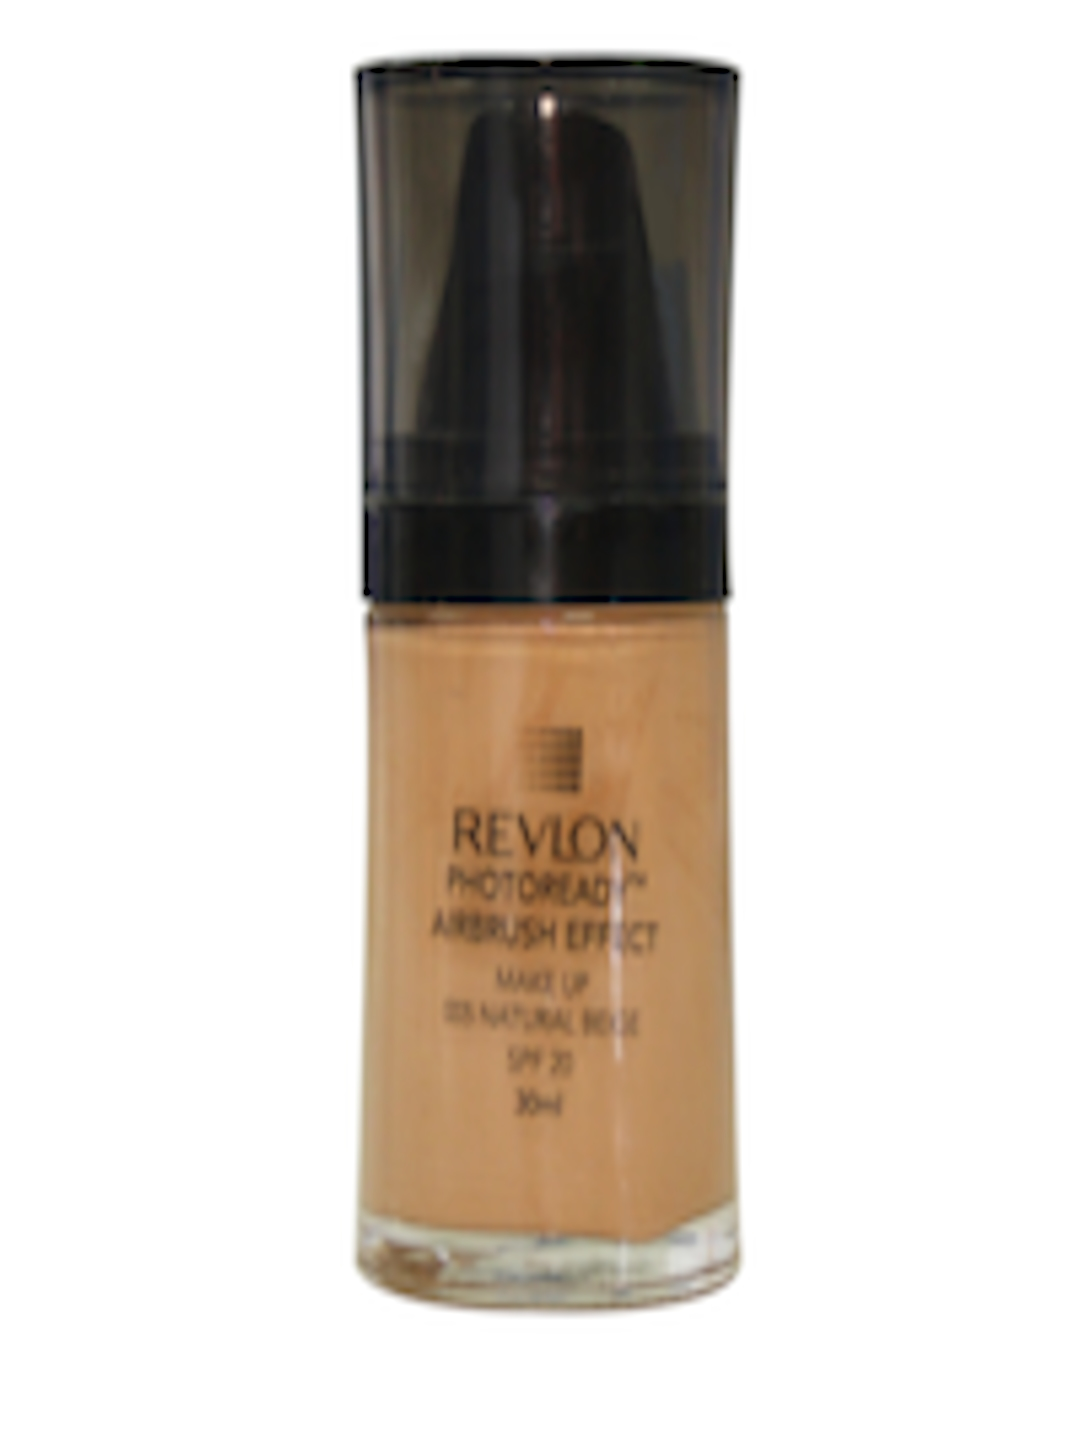 Buy Revlon Photoready Airbrush Effect SPF 20 Natural Beige Foundation 005 - Foundation And Primer for Women 1094079 | Myntra